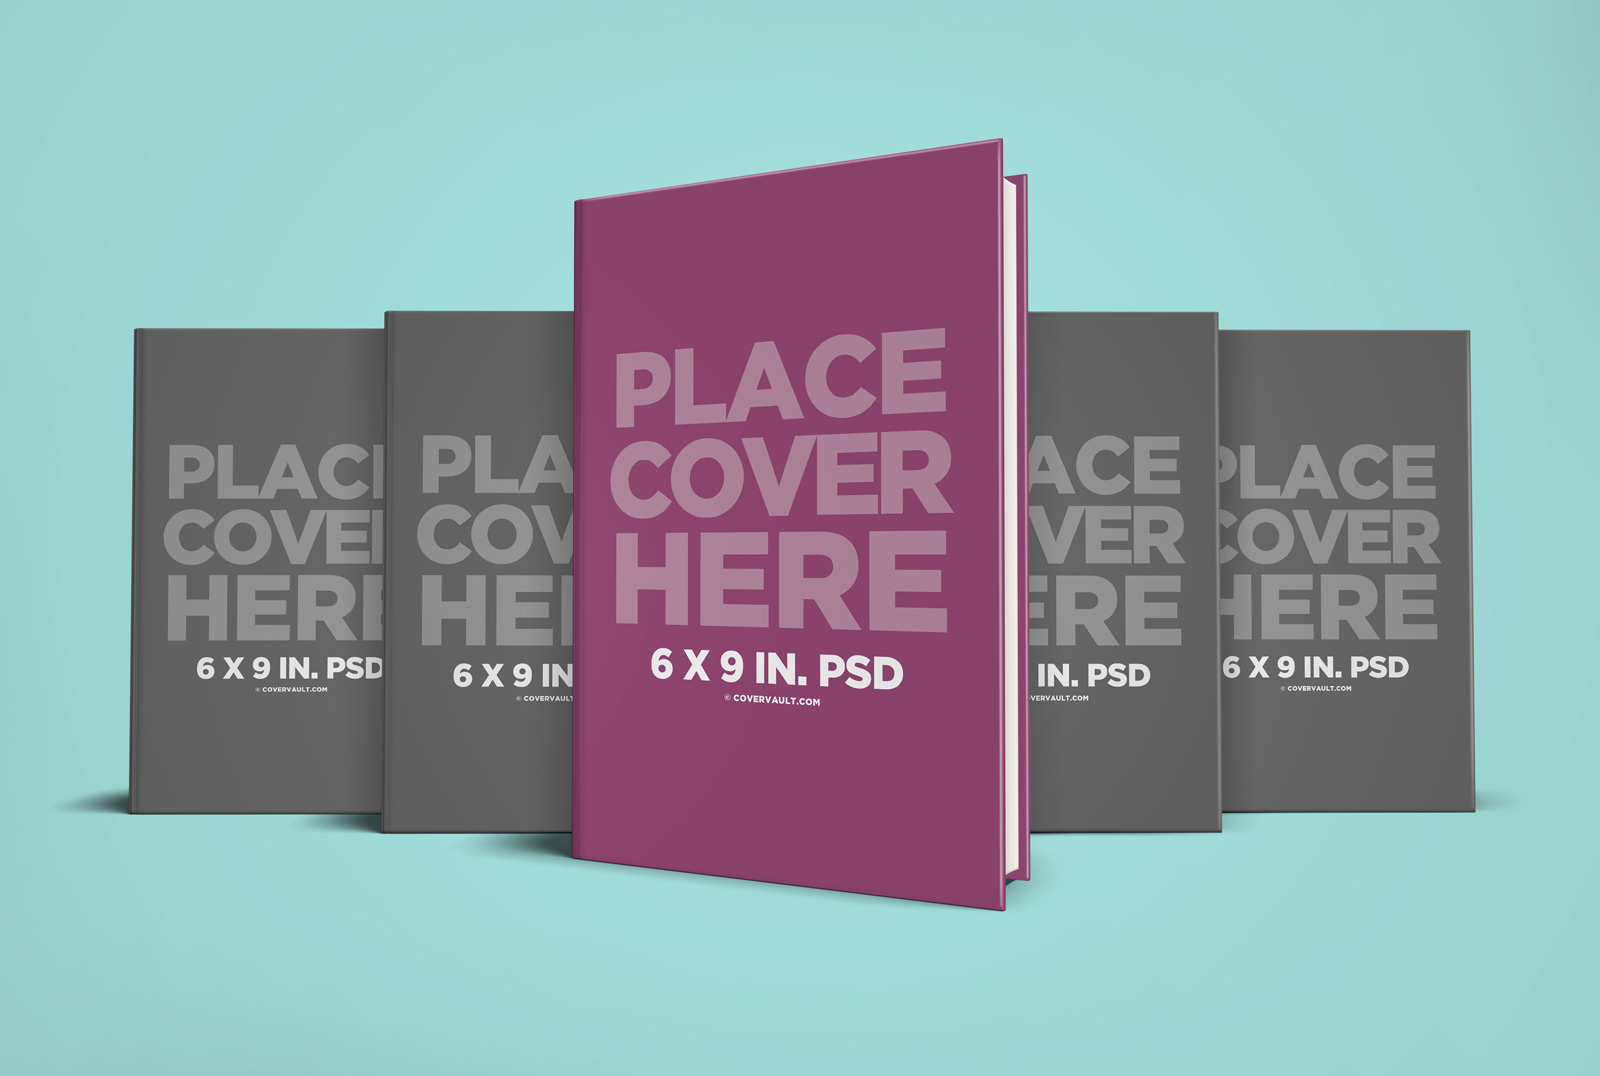 Free-Standing-Hardcover-Book-Series-Mockup-PSD